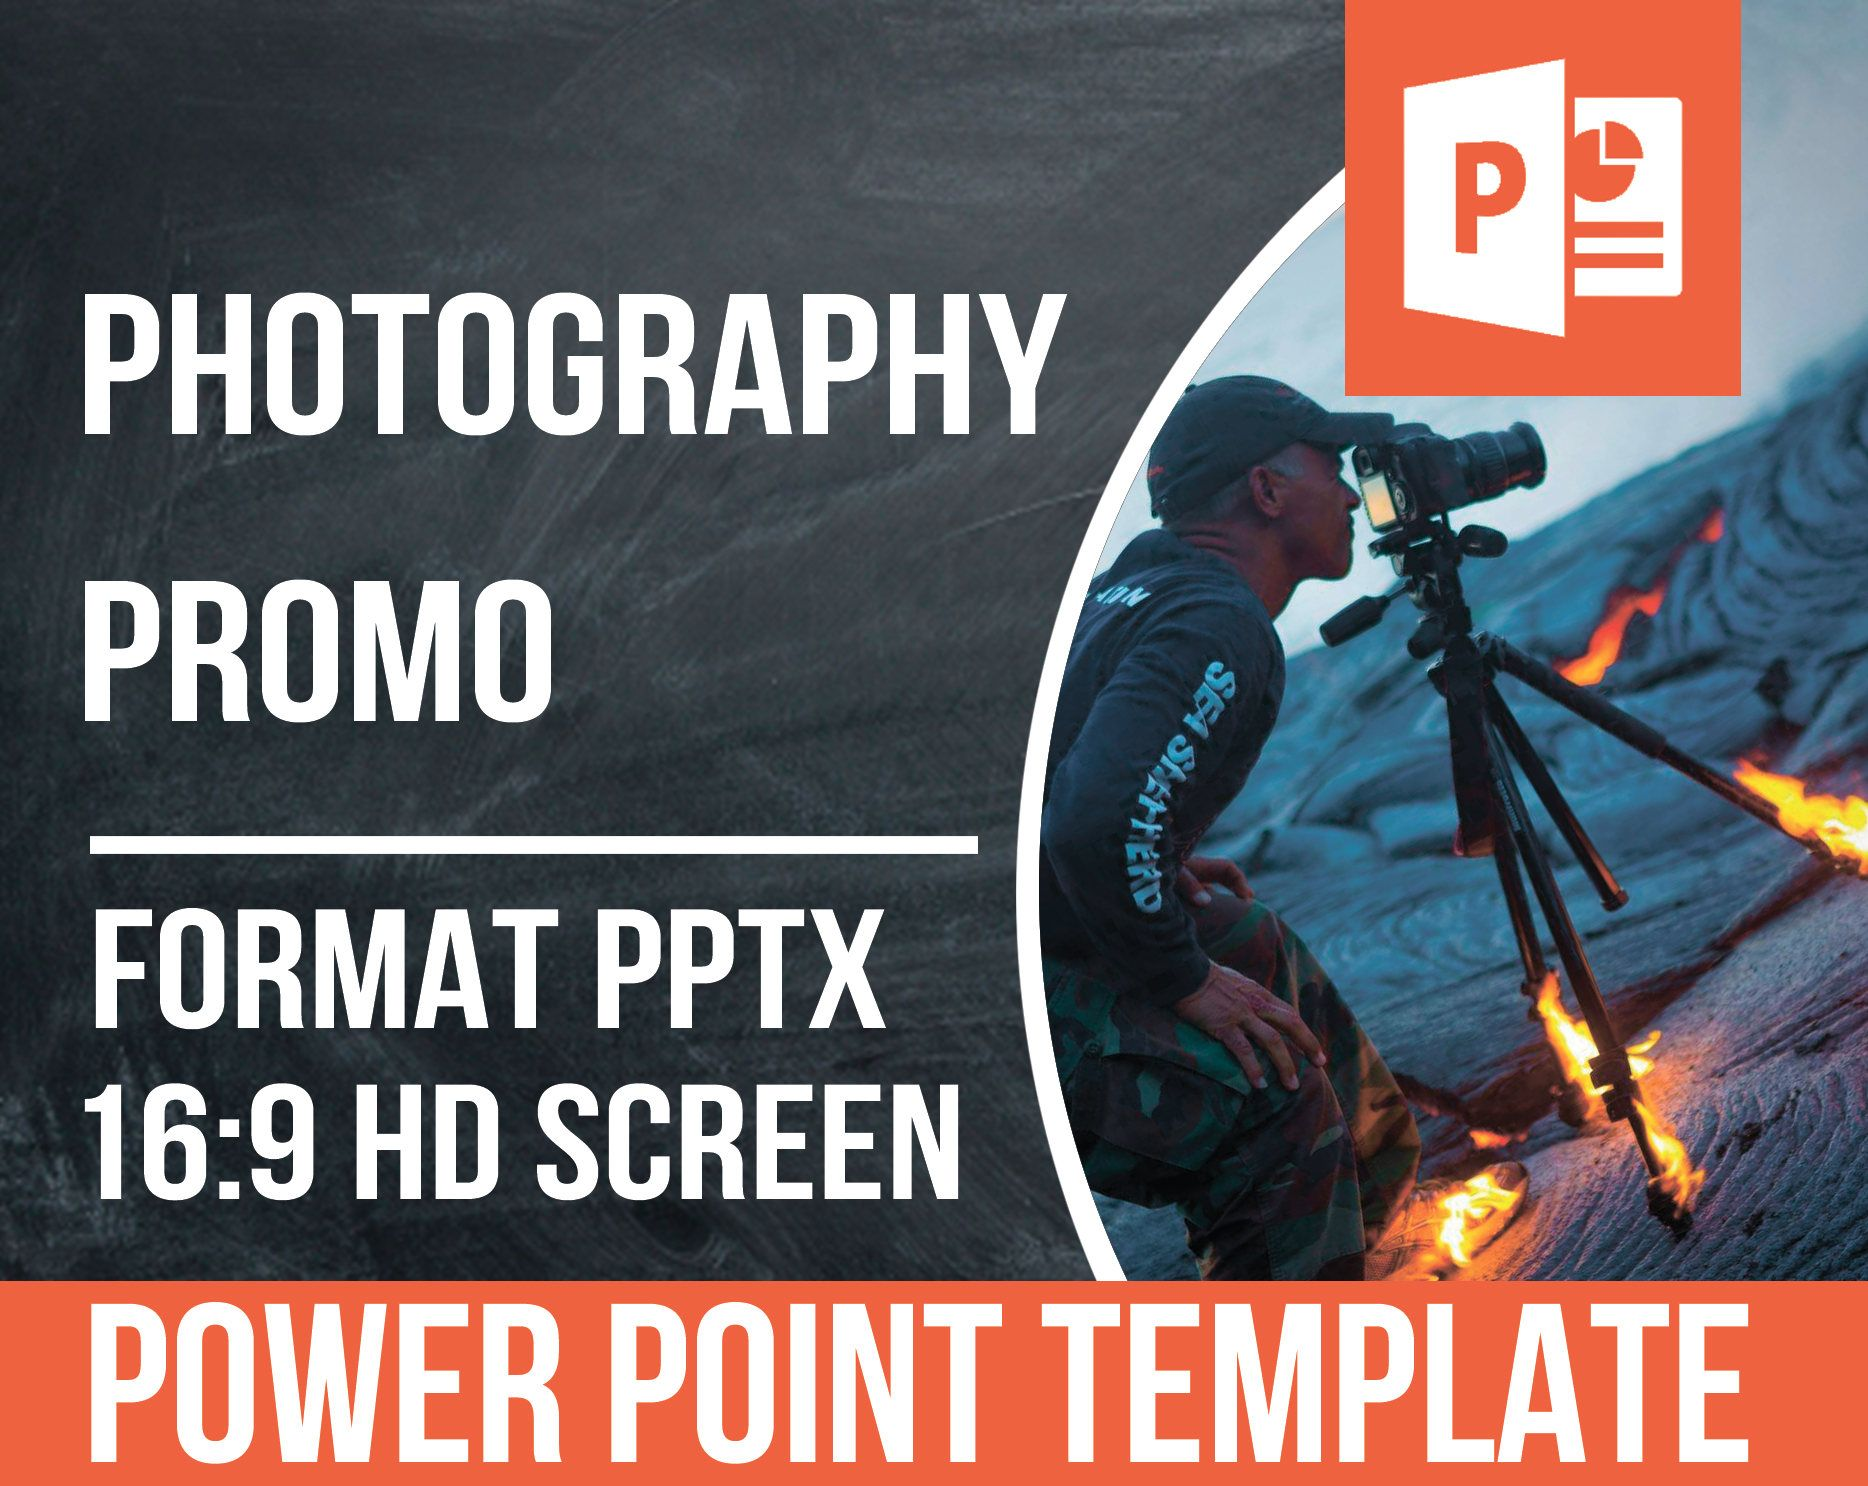 Powerpoint powerpoint template powerpoint design ppt templates powerpoint template photography httpetsy2ivtft7 powerpointtemplate ppttemplates toneelgroepblik Image collections